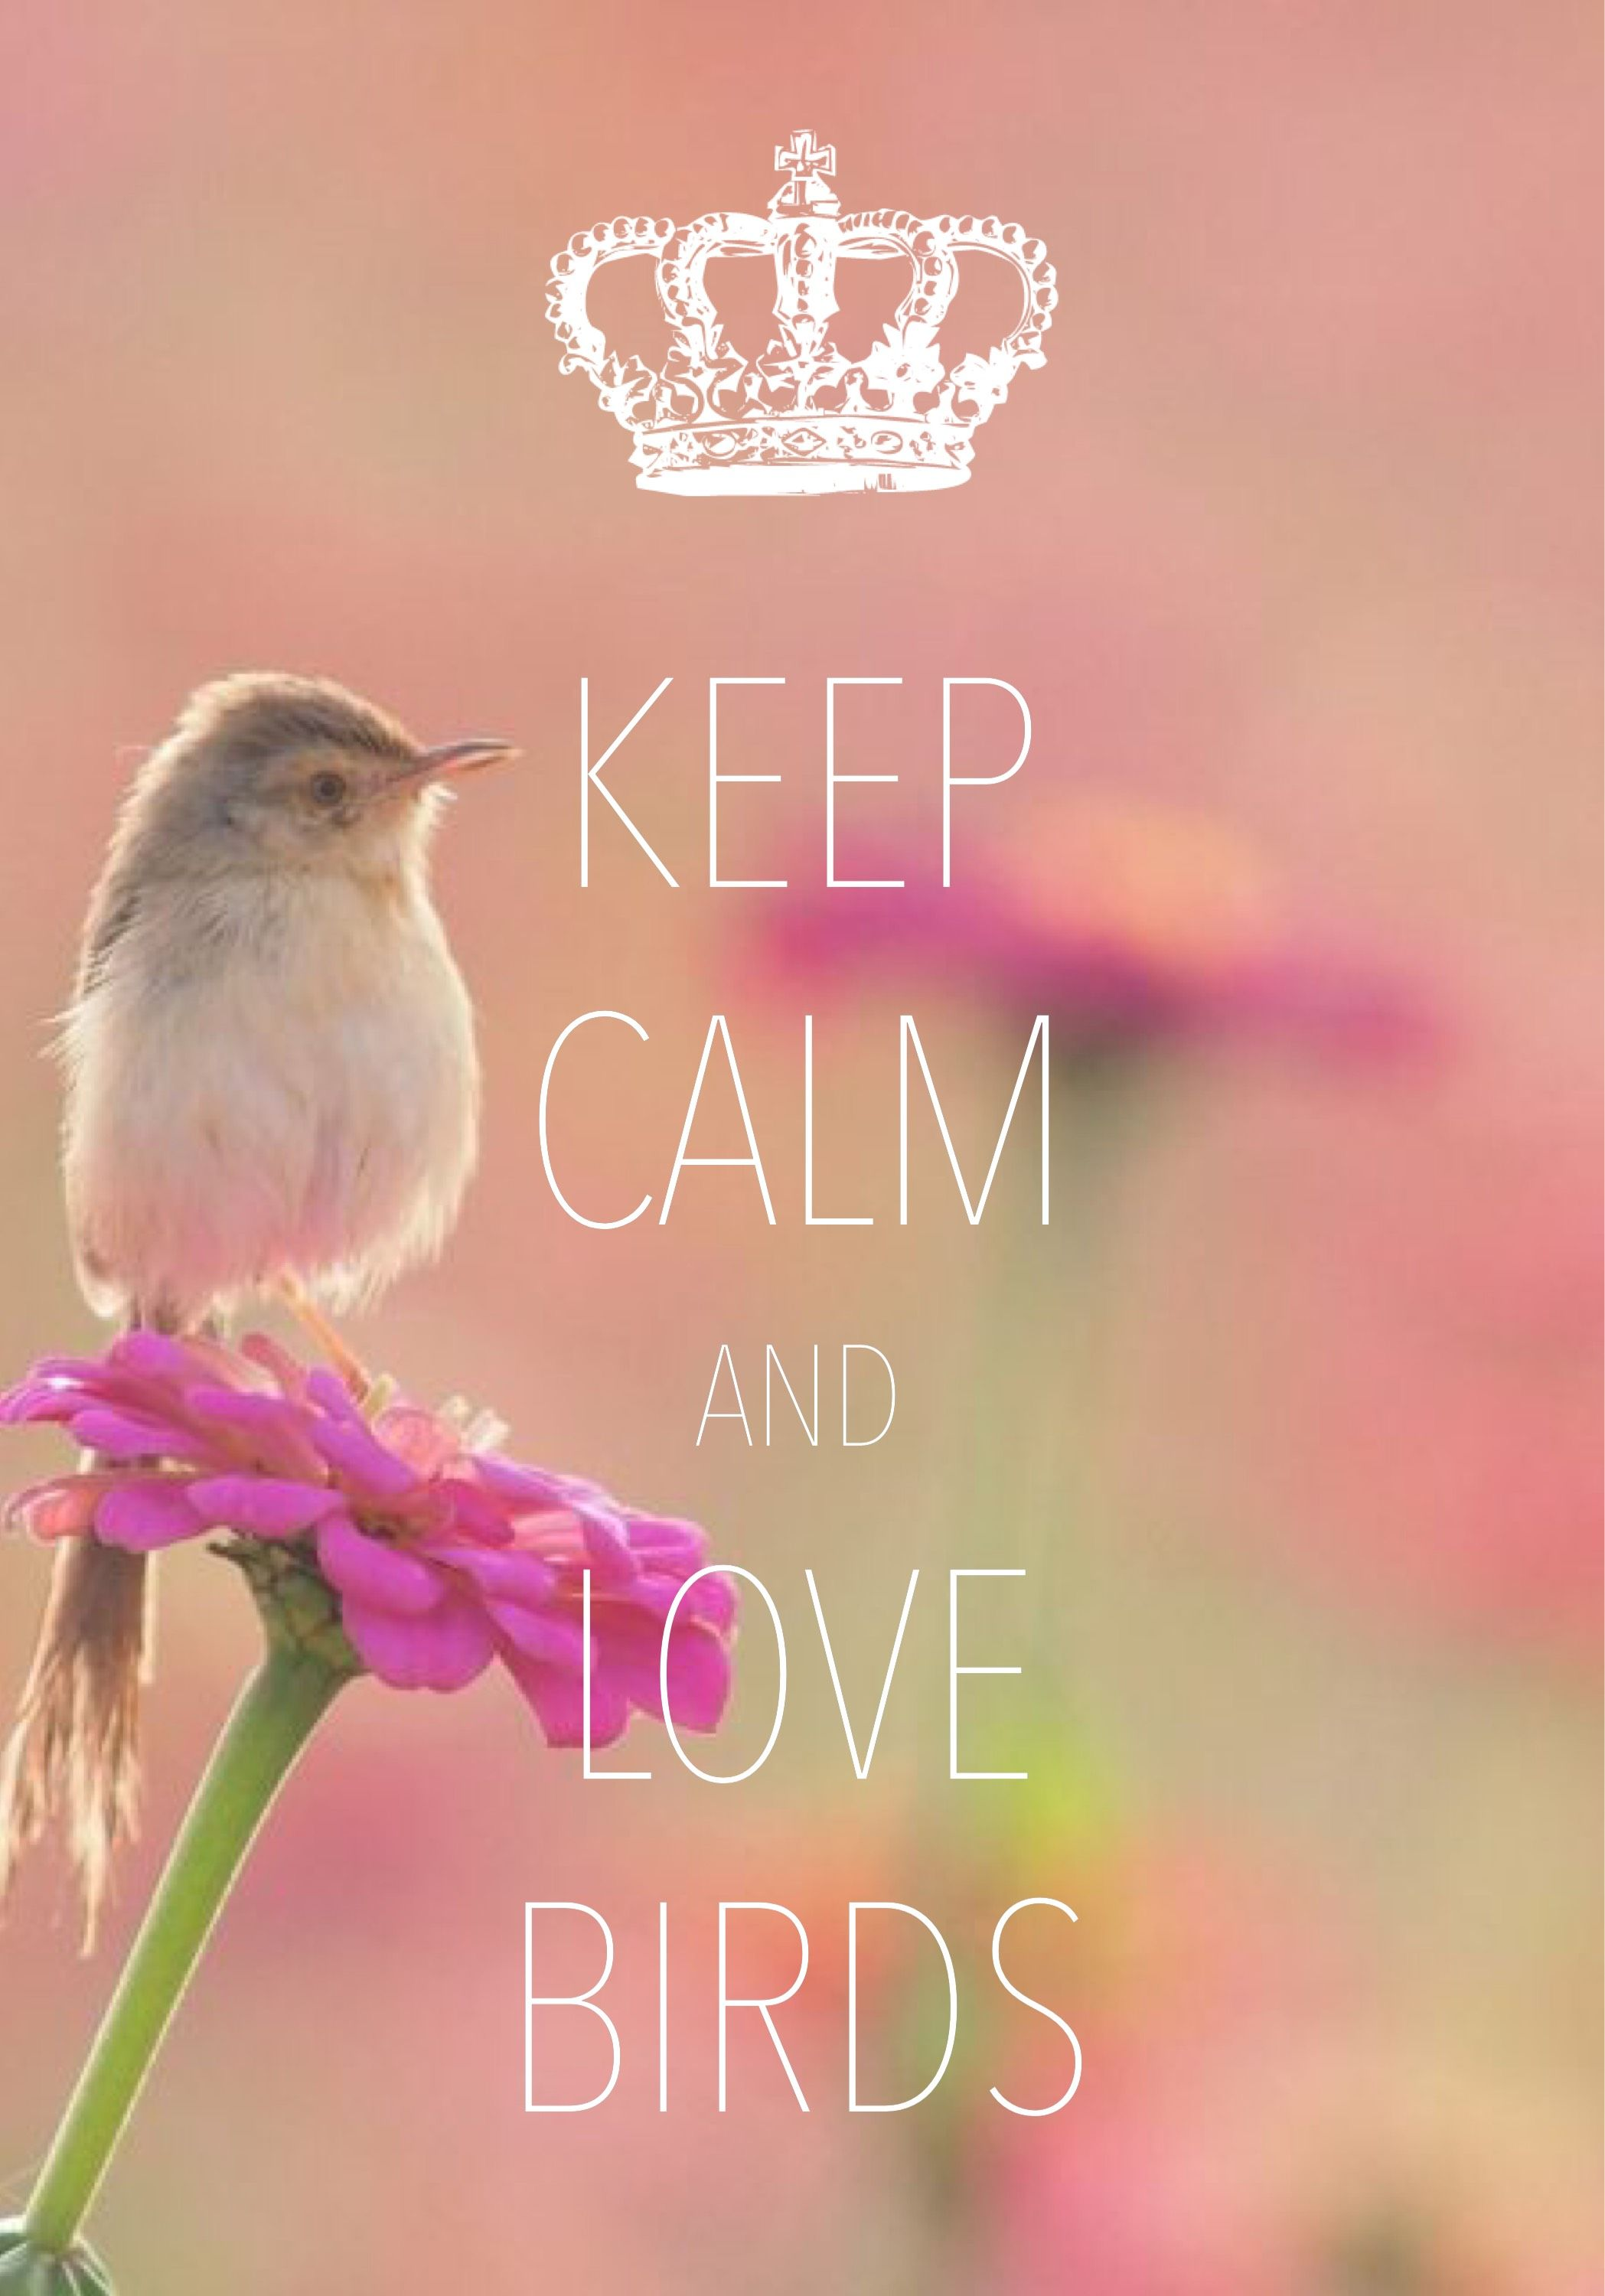 Love Bird Quotes Keep Calm And Love Birds  Created With Keep Calm And Carry On For